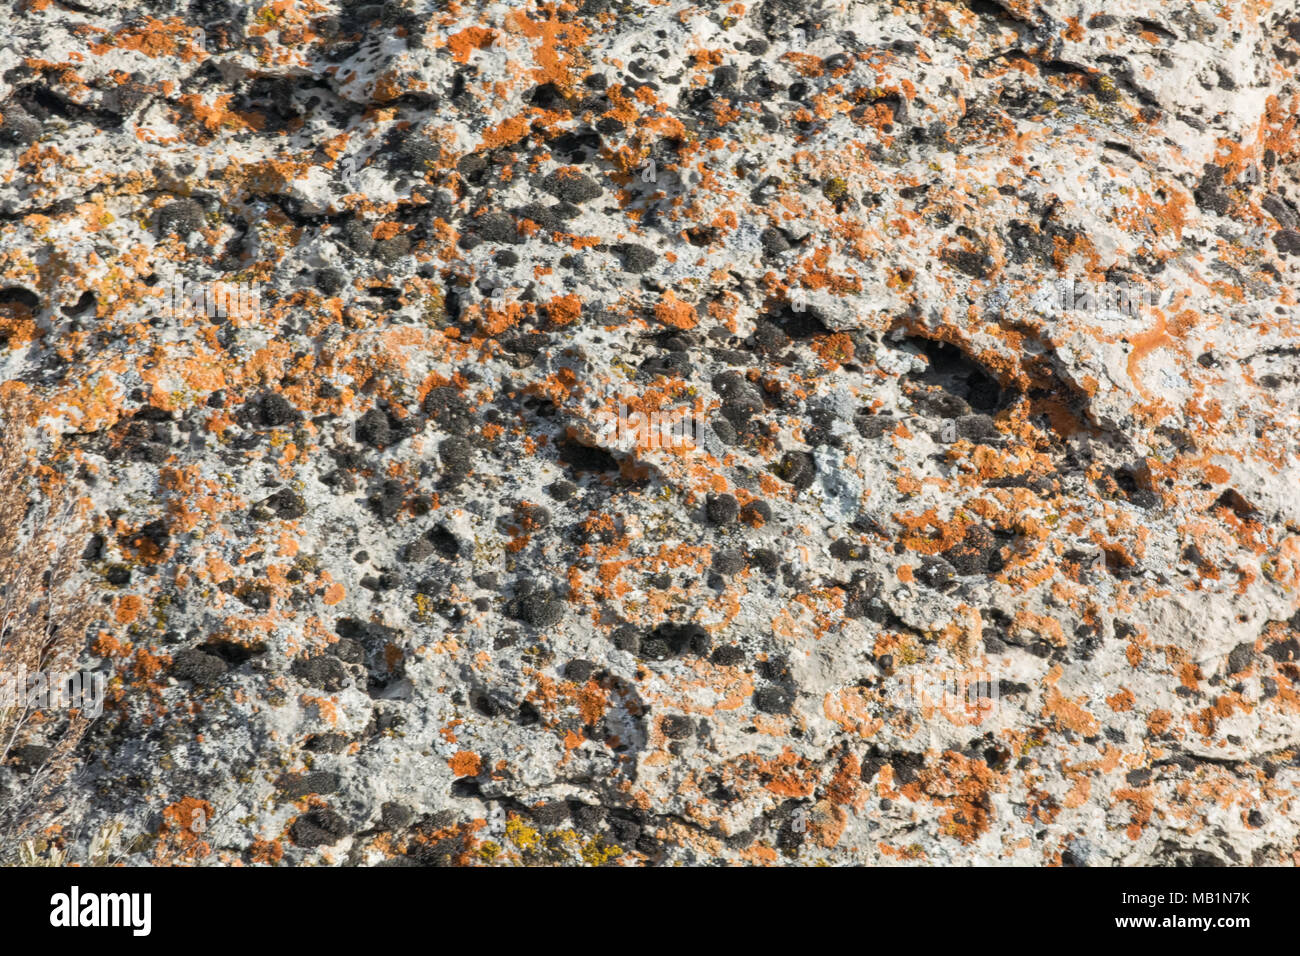 Orange lichen and black material cover a light colored granite face. - Stock Image